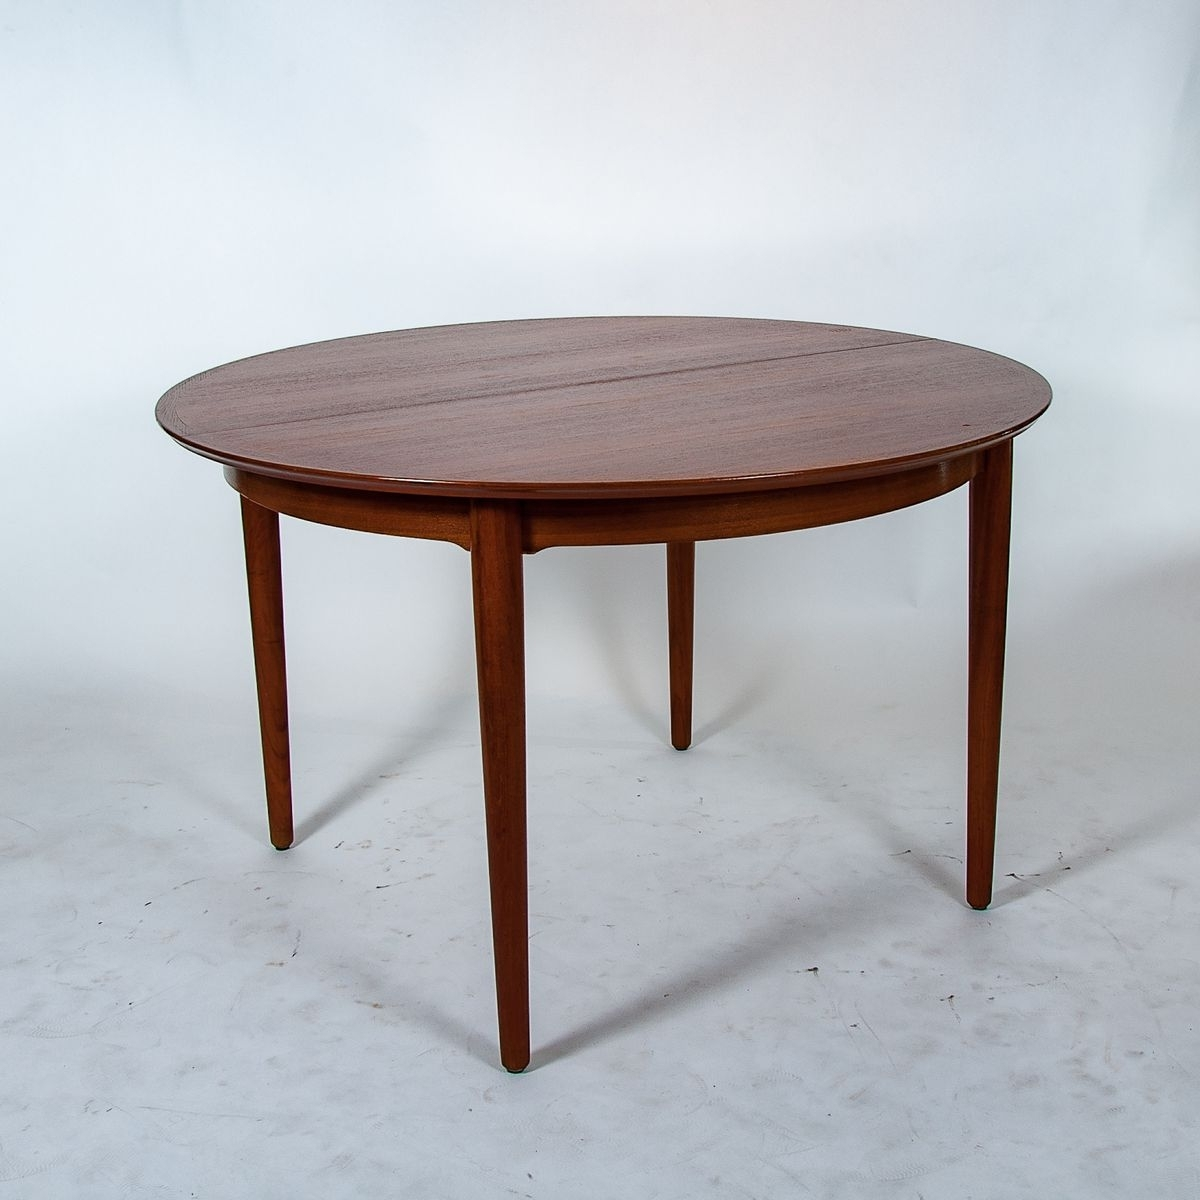 Preferred Mid Century Danish Design Dining Tablearne Vodder For Sibast Within Danish Dining Tables (View 19 of 25)